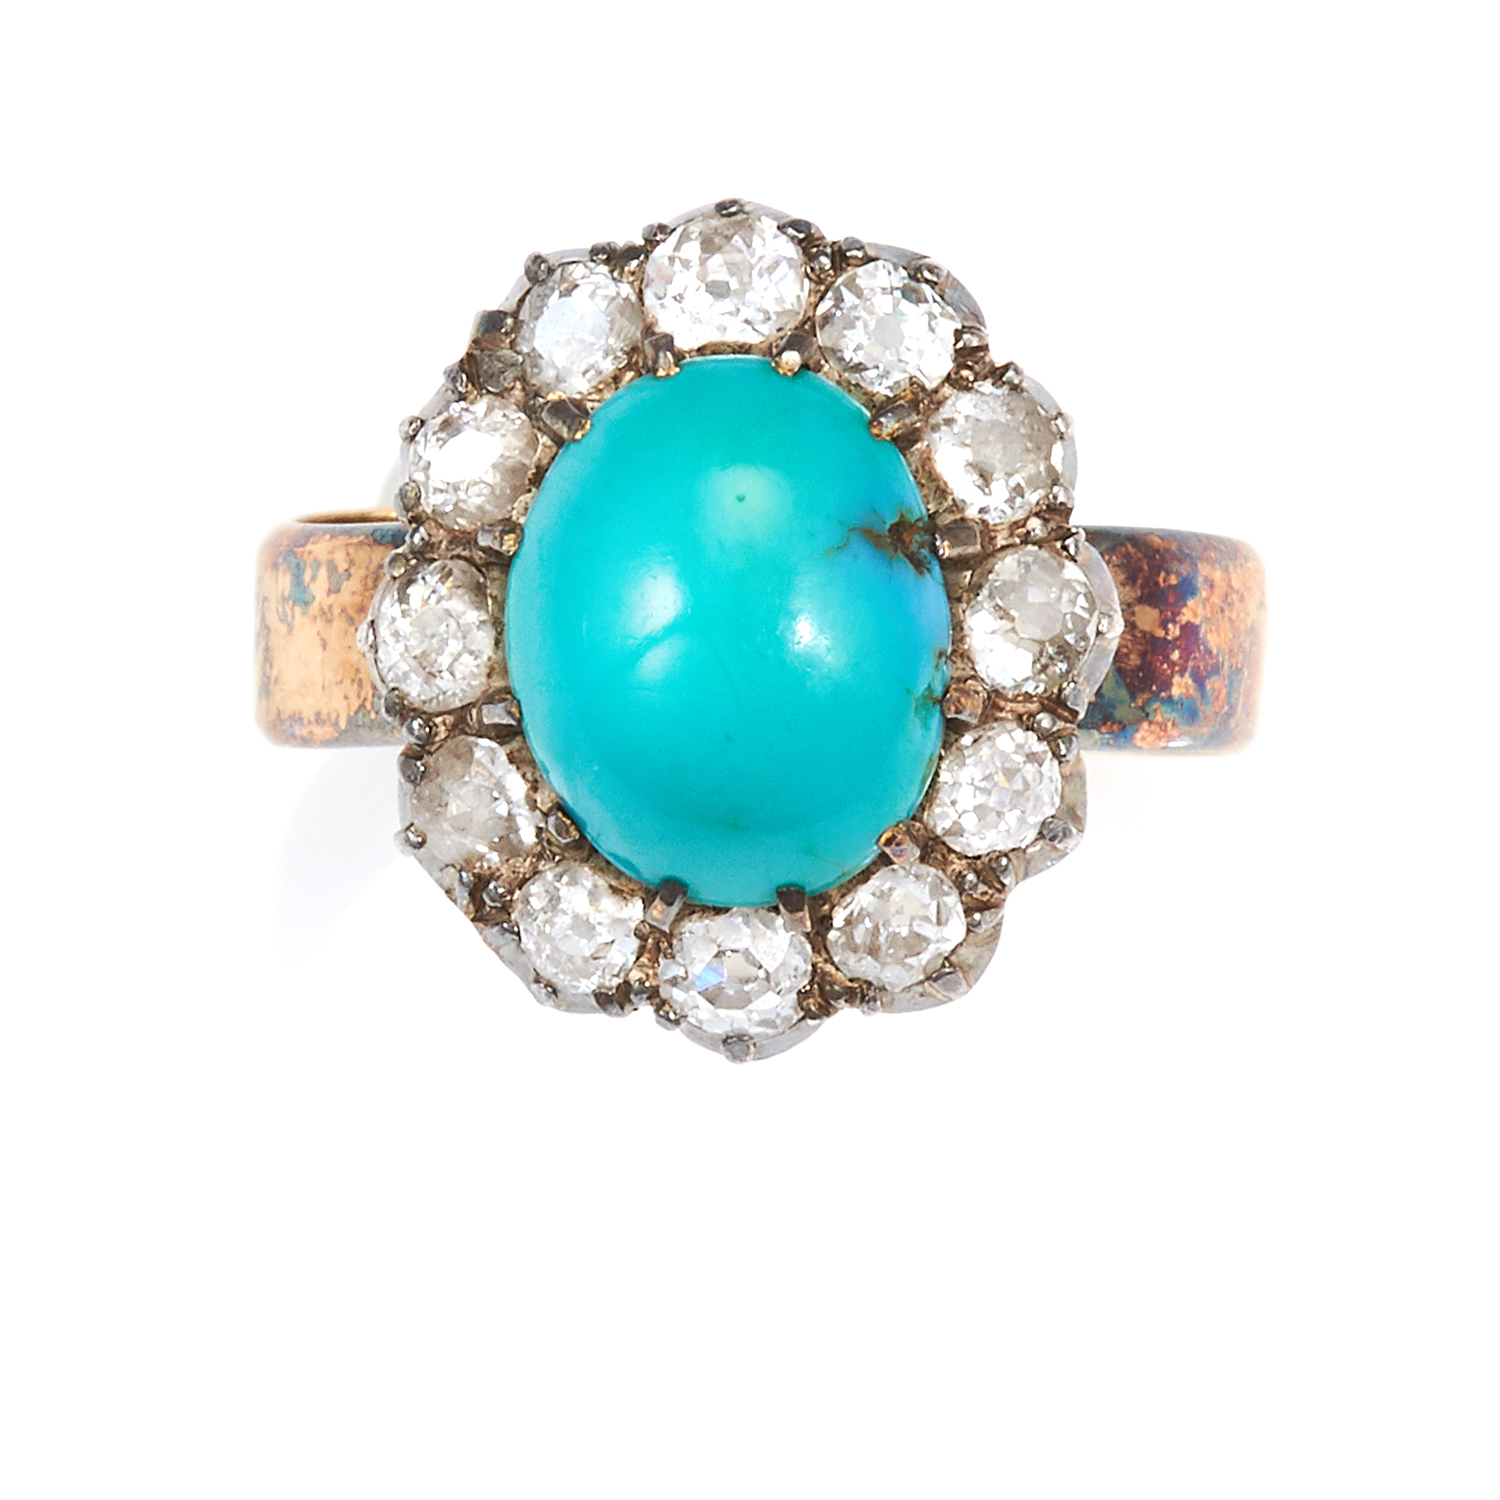 Los 40 - AN ANTIQUE TURQUOISE AND DIAMOND RING in 18ct yellow gold and silver, set with an oval turquoise